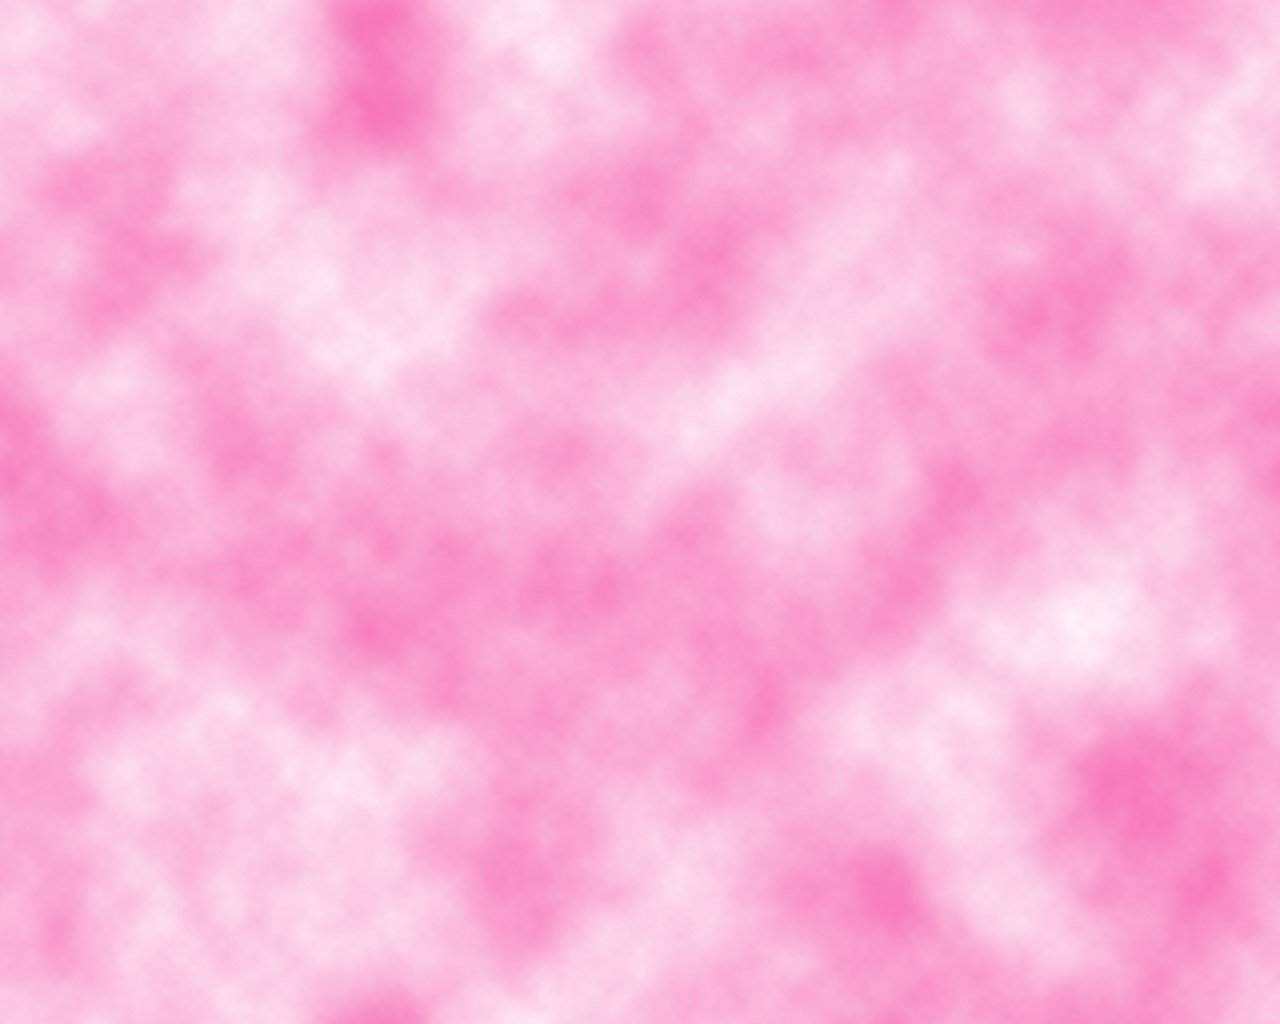 Pink Clouds Background Images Pictures   Becuo 1280x1024